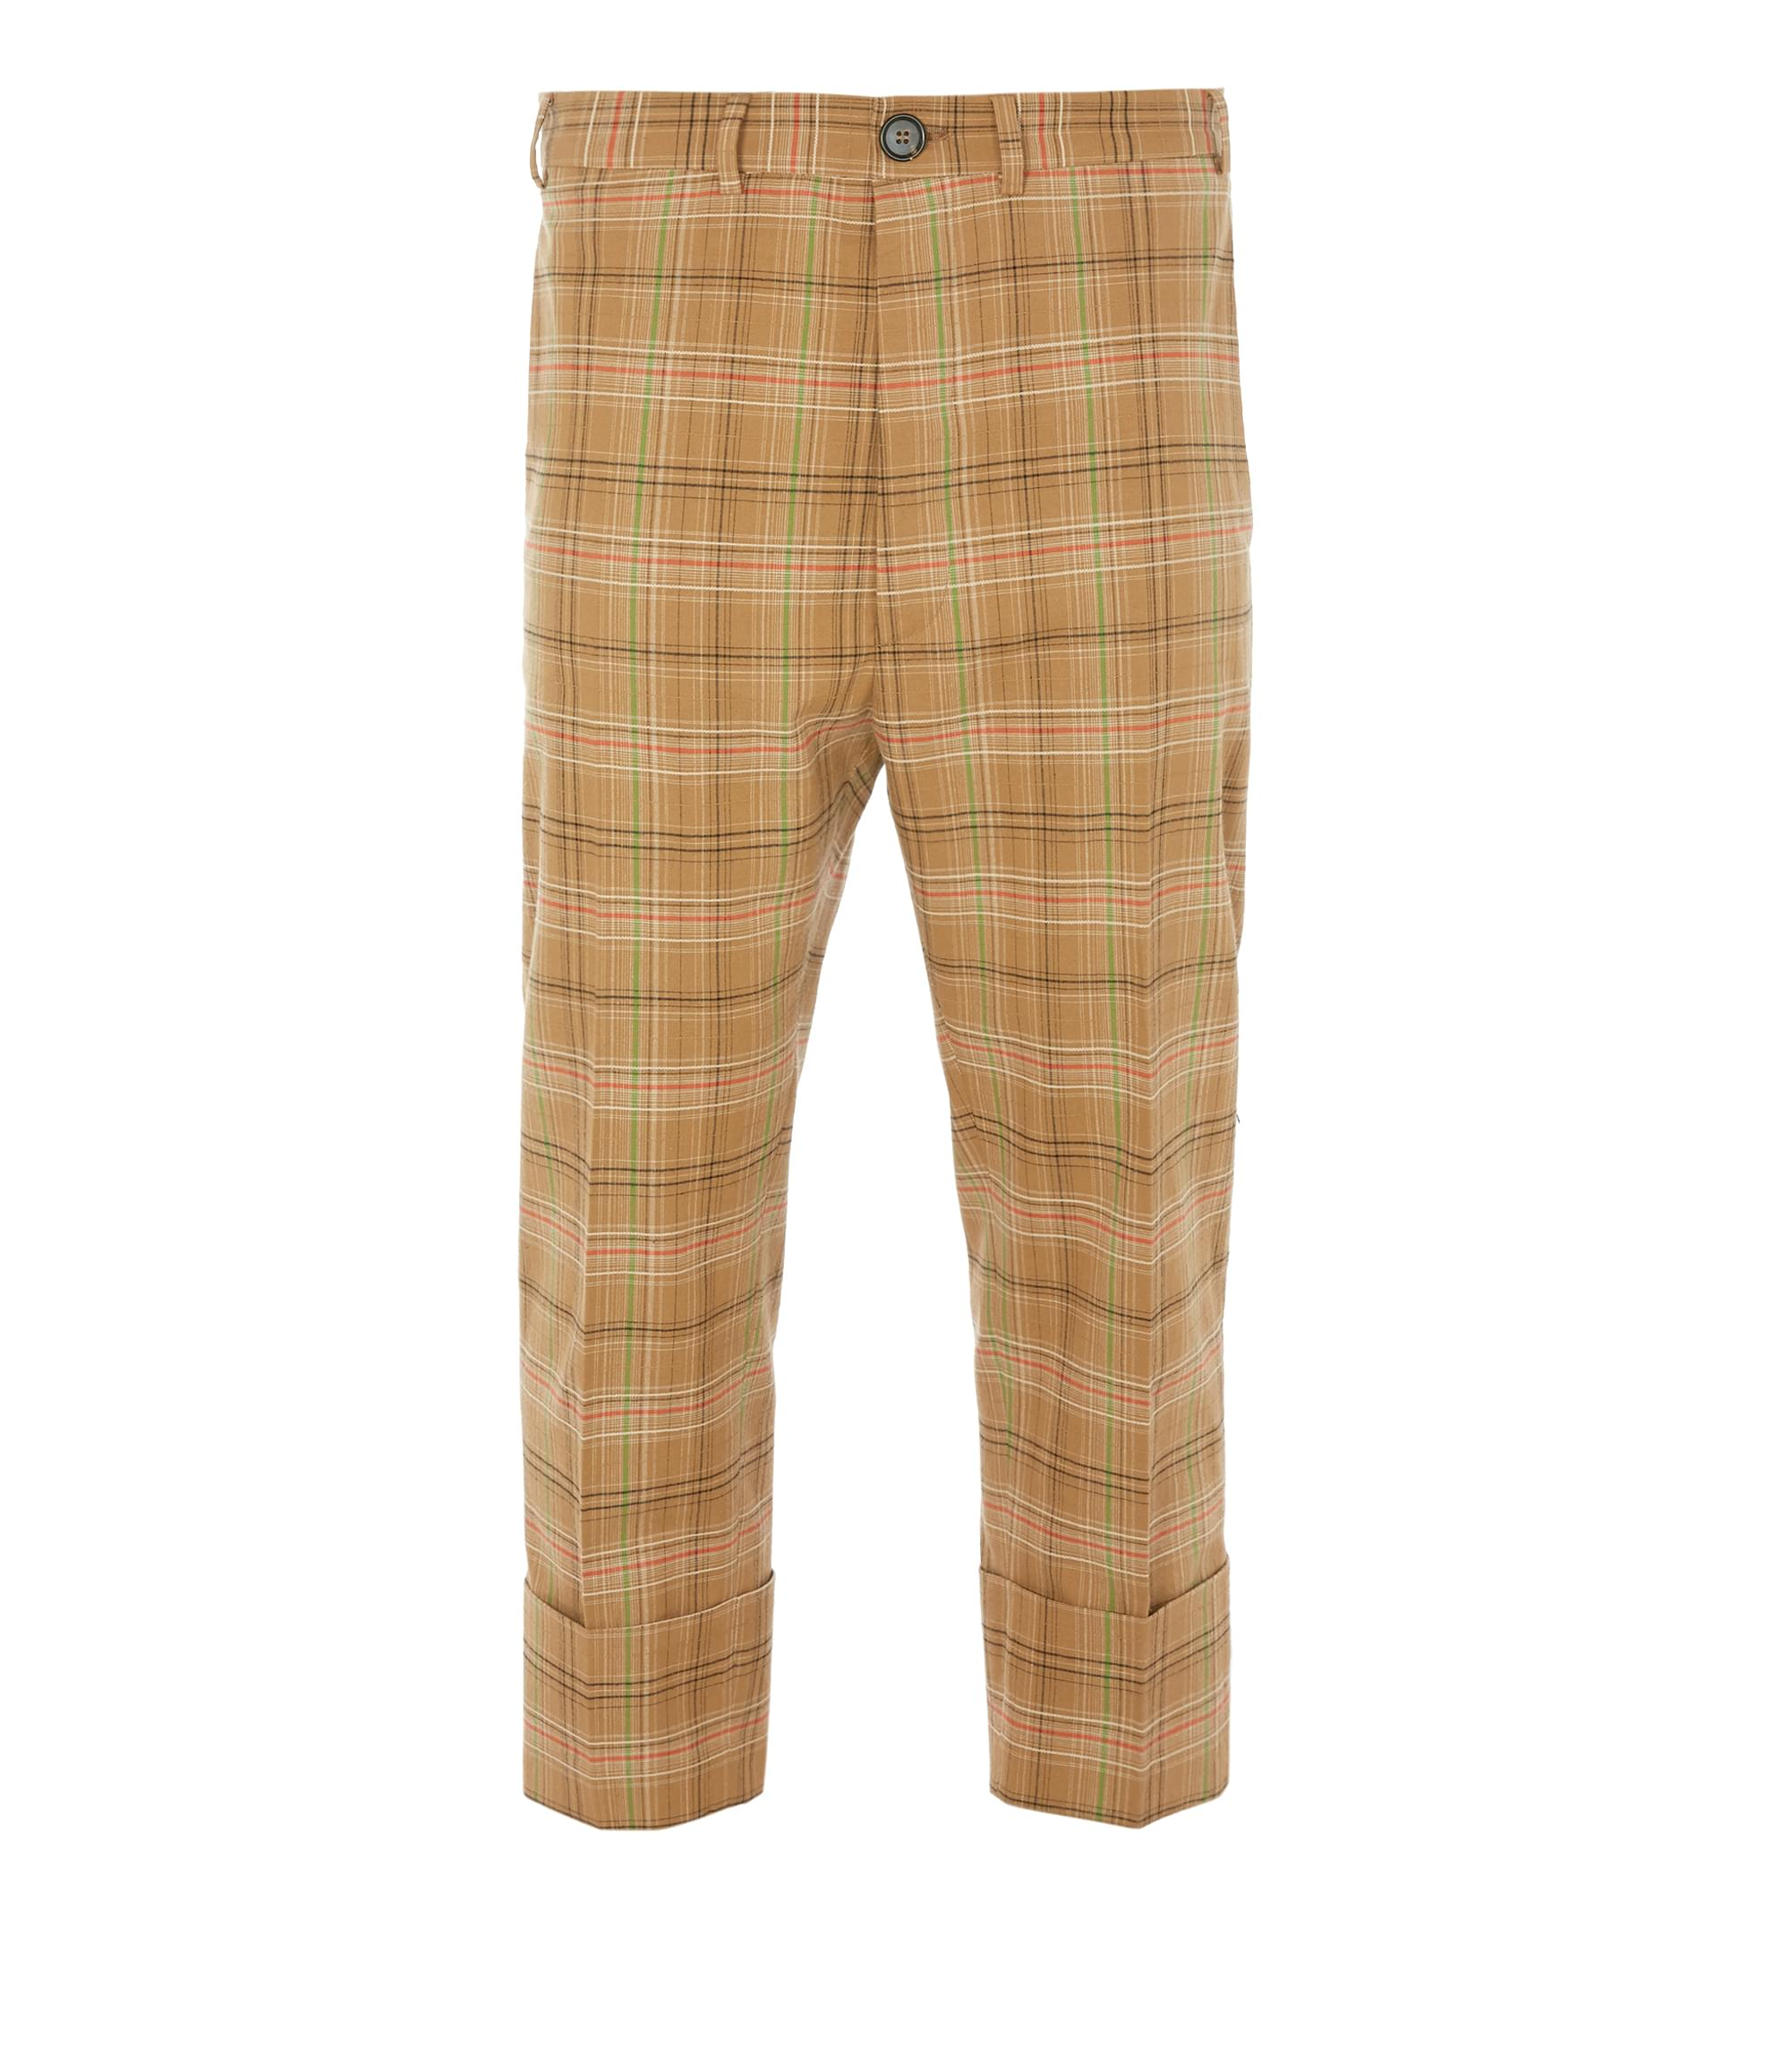 Vivienne Westwood Cropped James Bond Trousers Camel Check